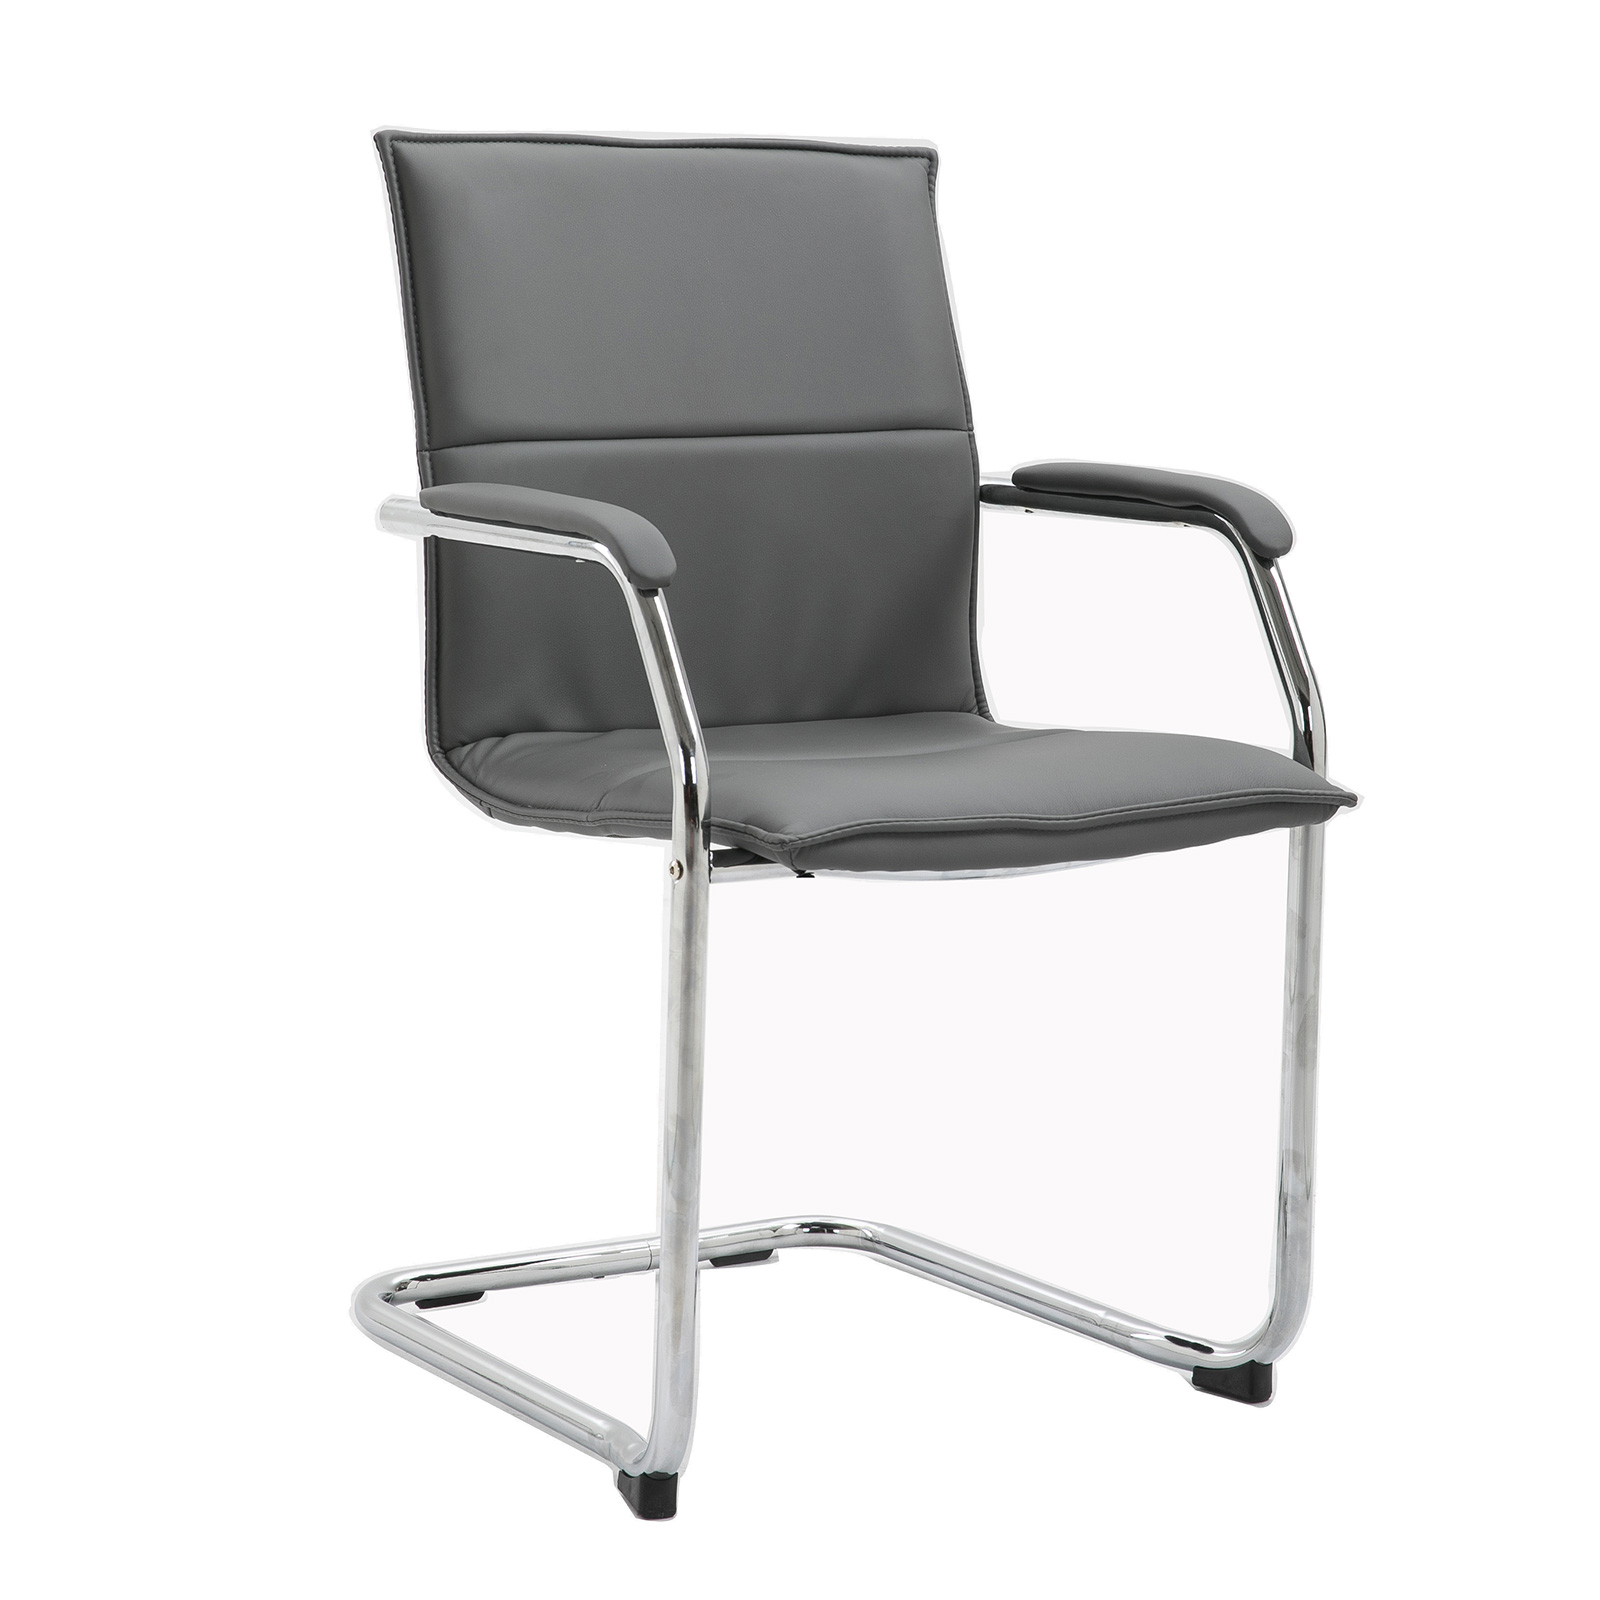 Essen stackable meeting room cantilever chair - grey faux leather